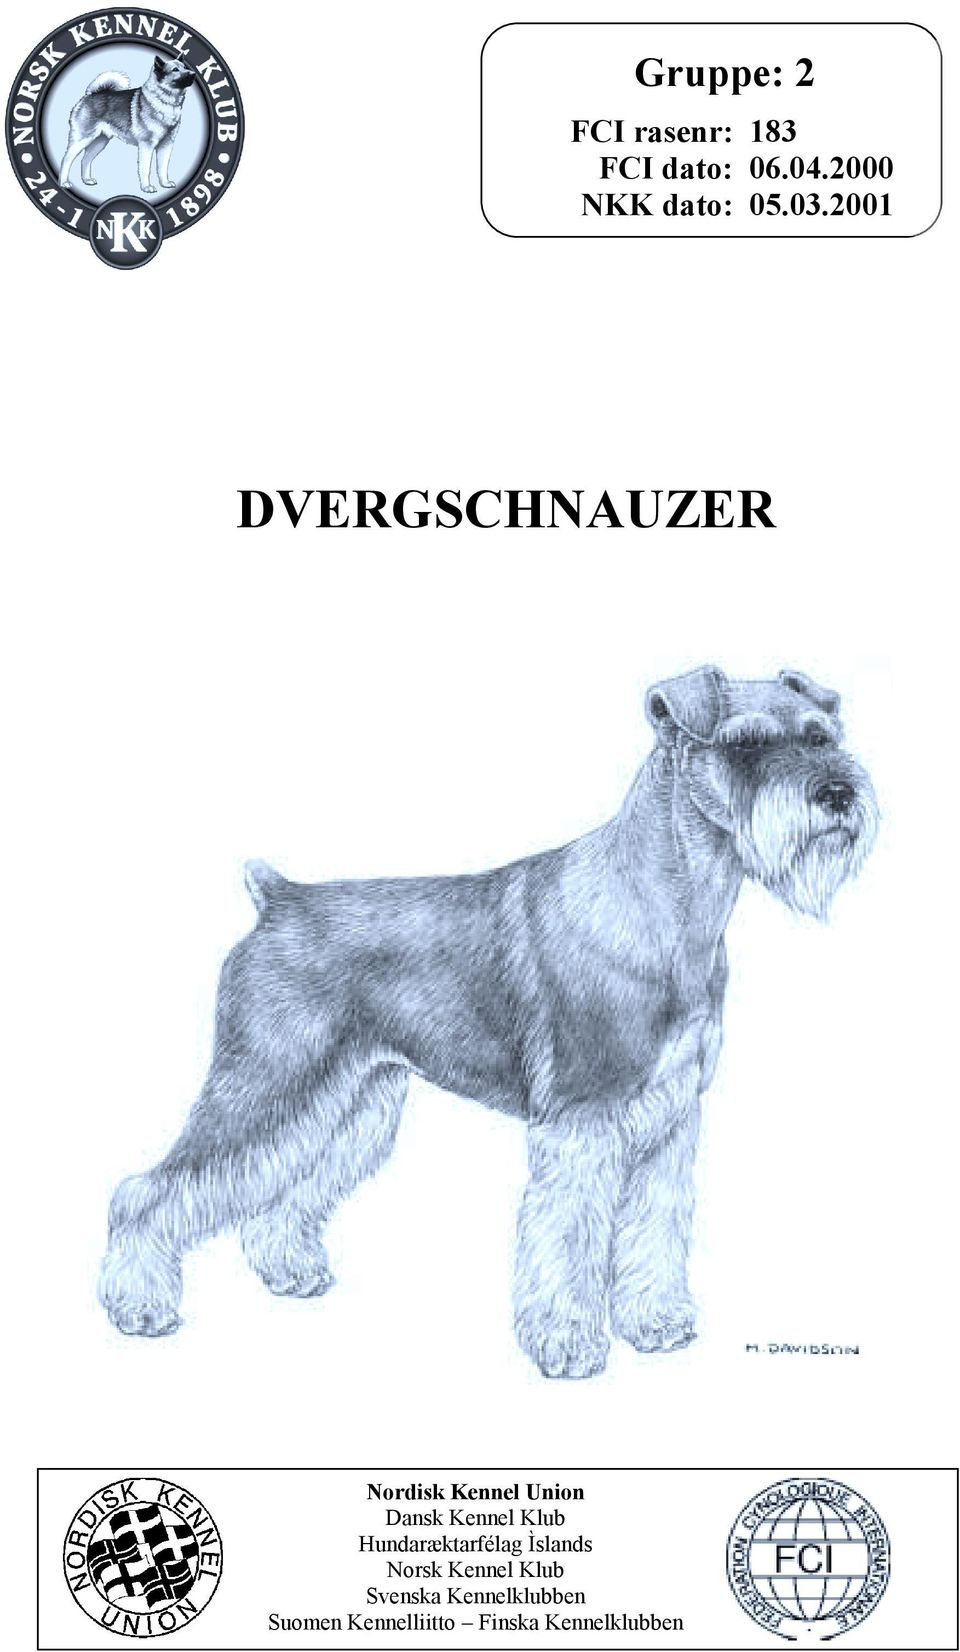 2001 DVERGSCHNAUZER Nordisk Kennel Union Dansk Kennel